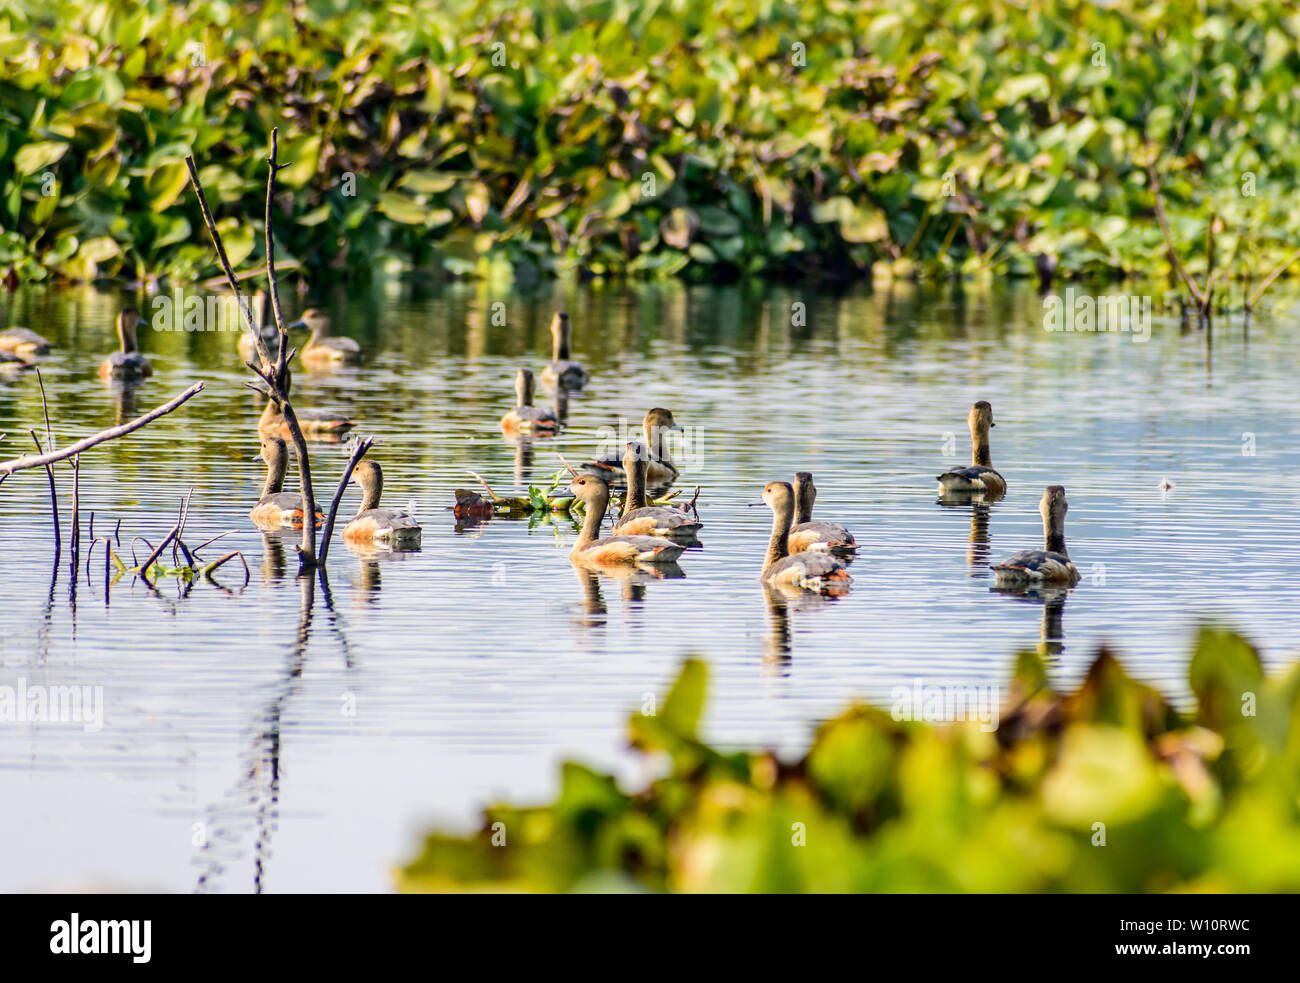 Closeup flock of billed duck aquatic bird (Anatidae species family), a chicken sized bird spotted in swimming in the lake field with Flowering Water H - Stock Image